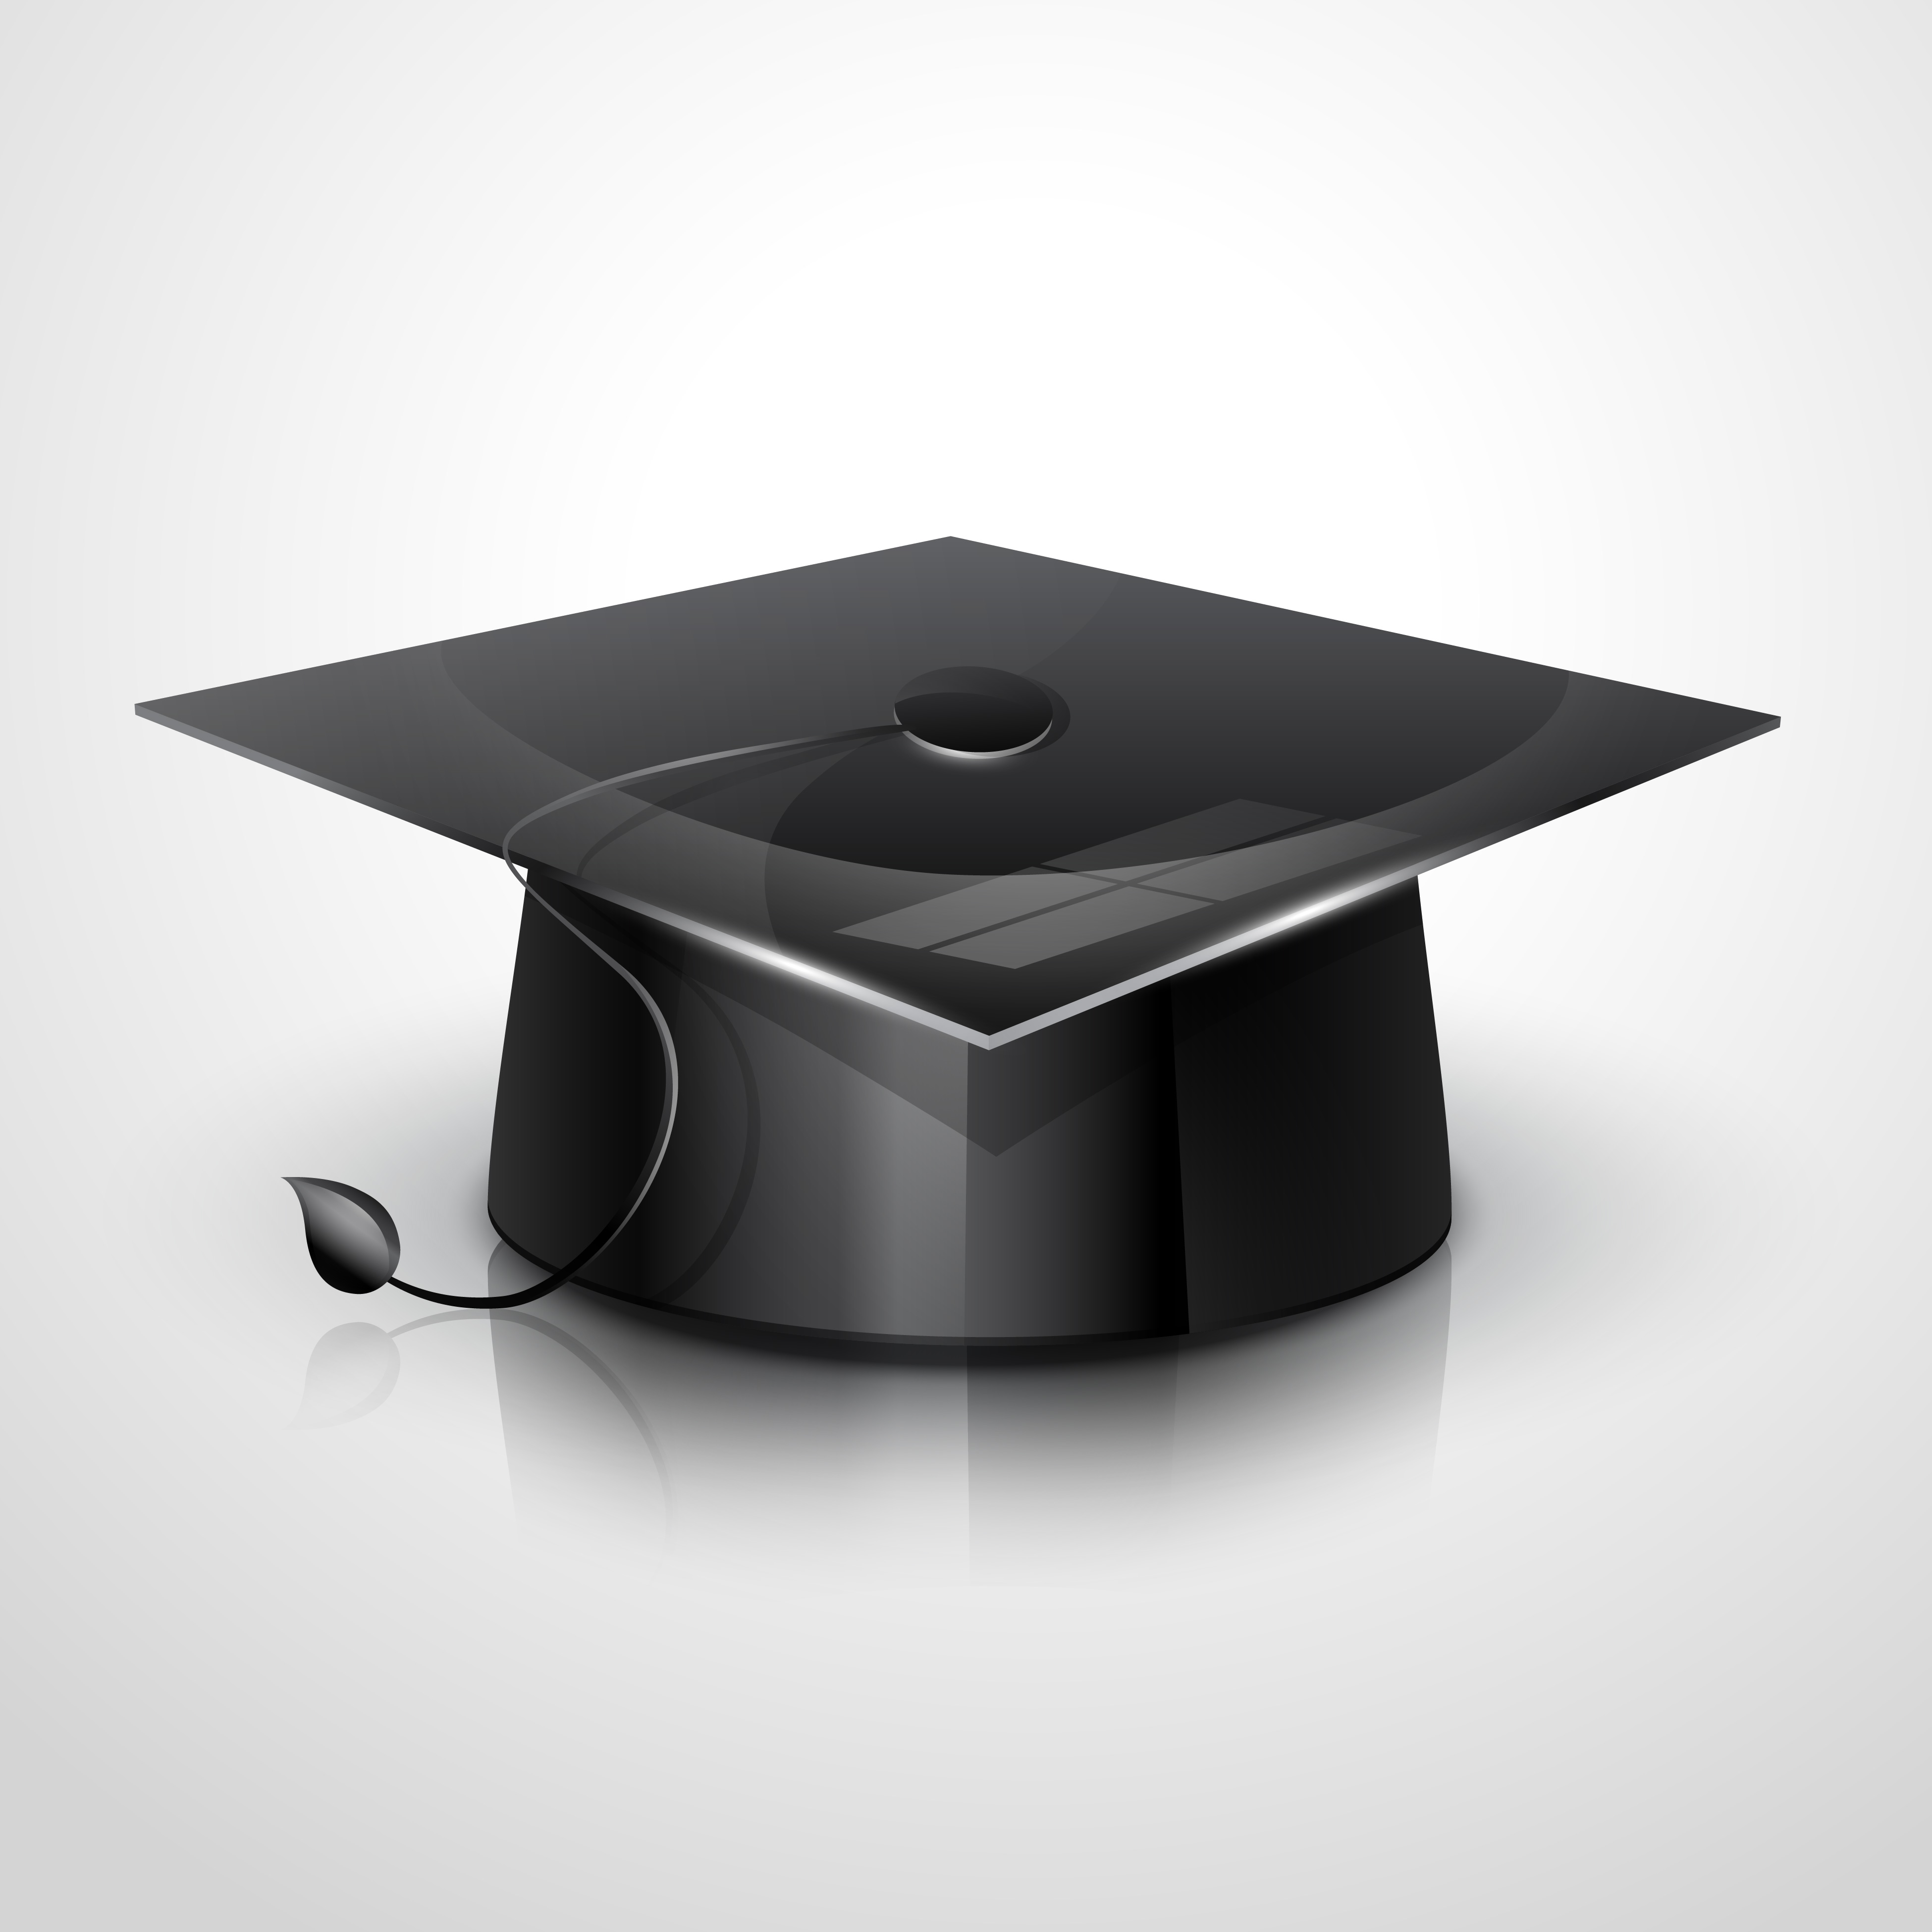 Cap And Gown - (3469 Free Downloads)